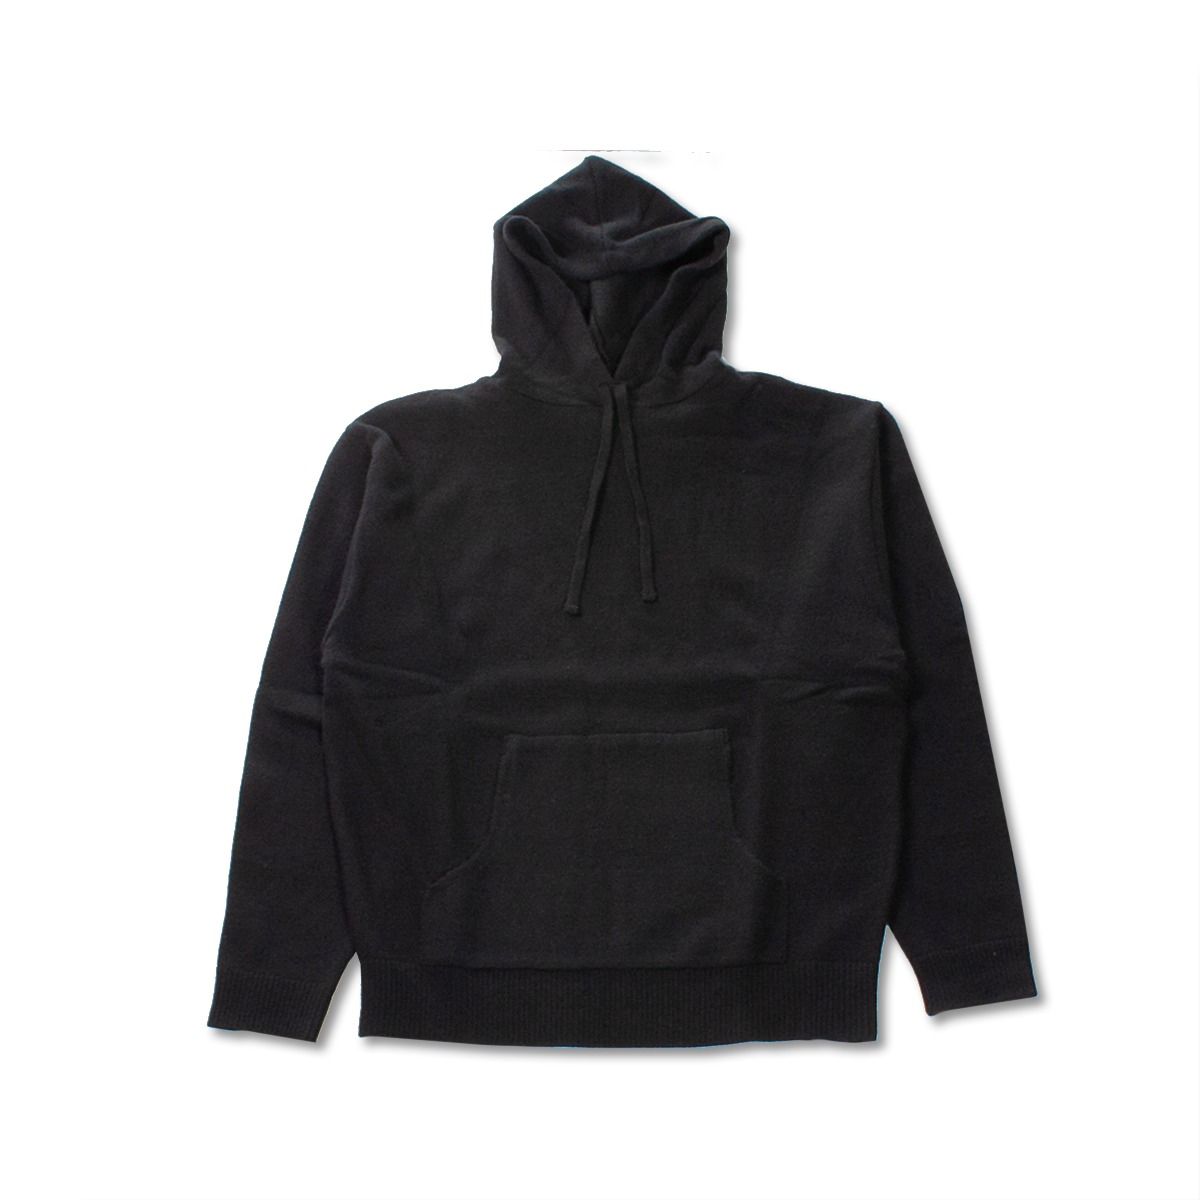 [8DIVISION] OVERSIZED KNIT HOODIE 'BLACK'